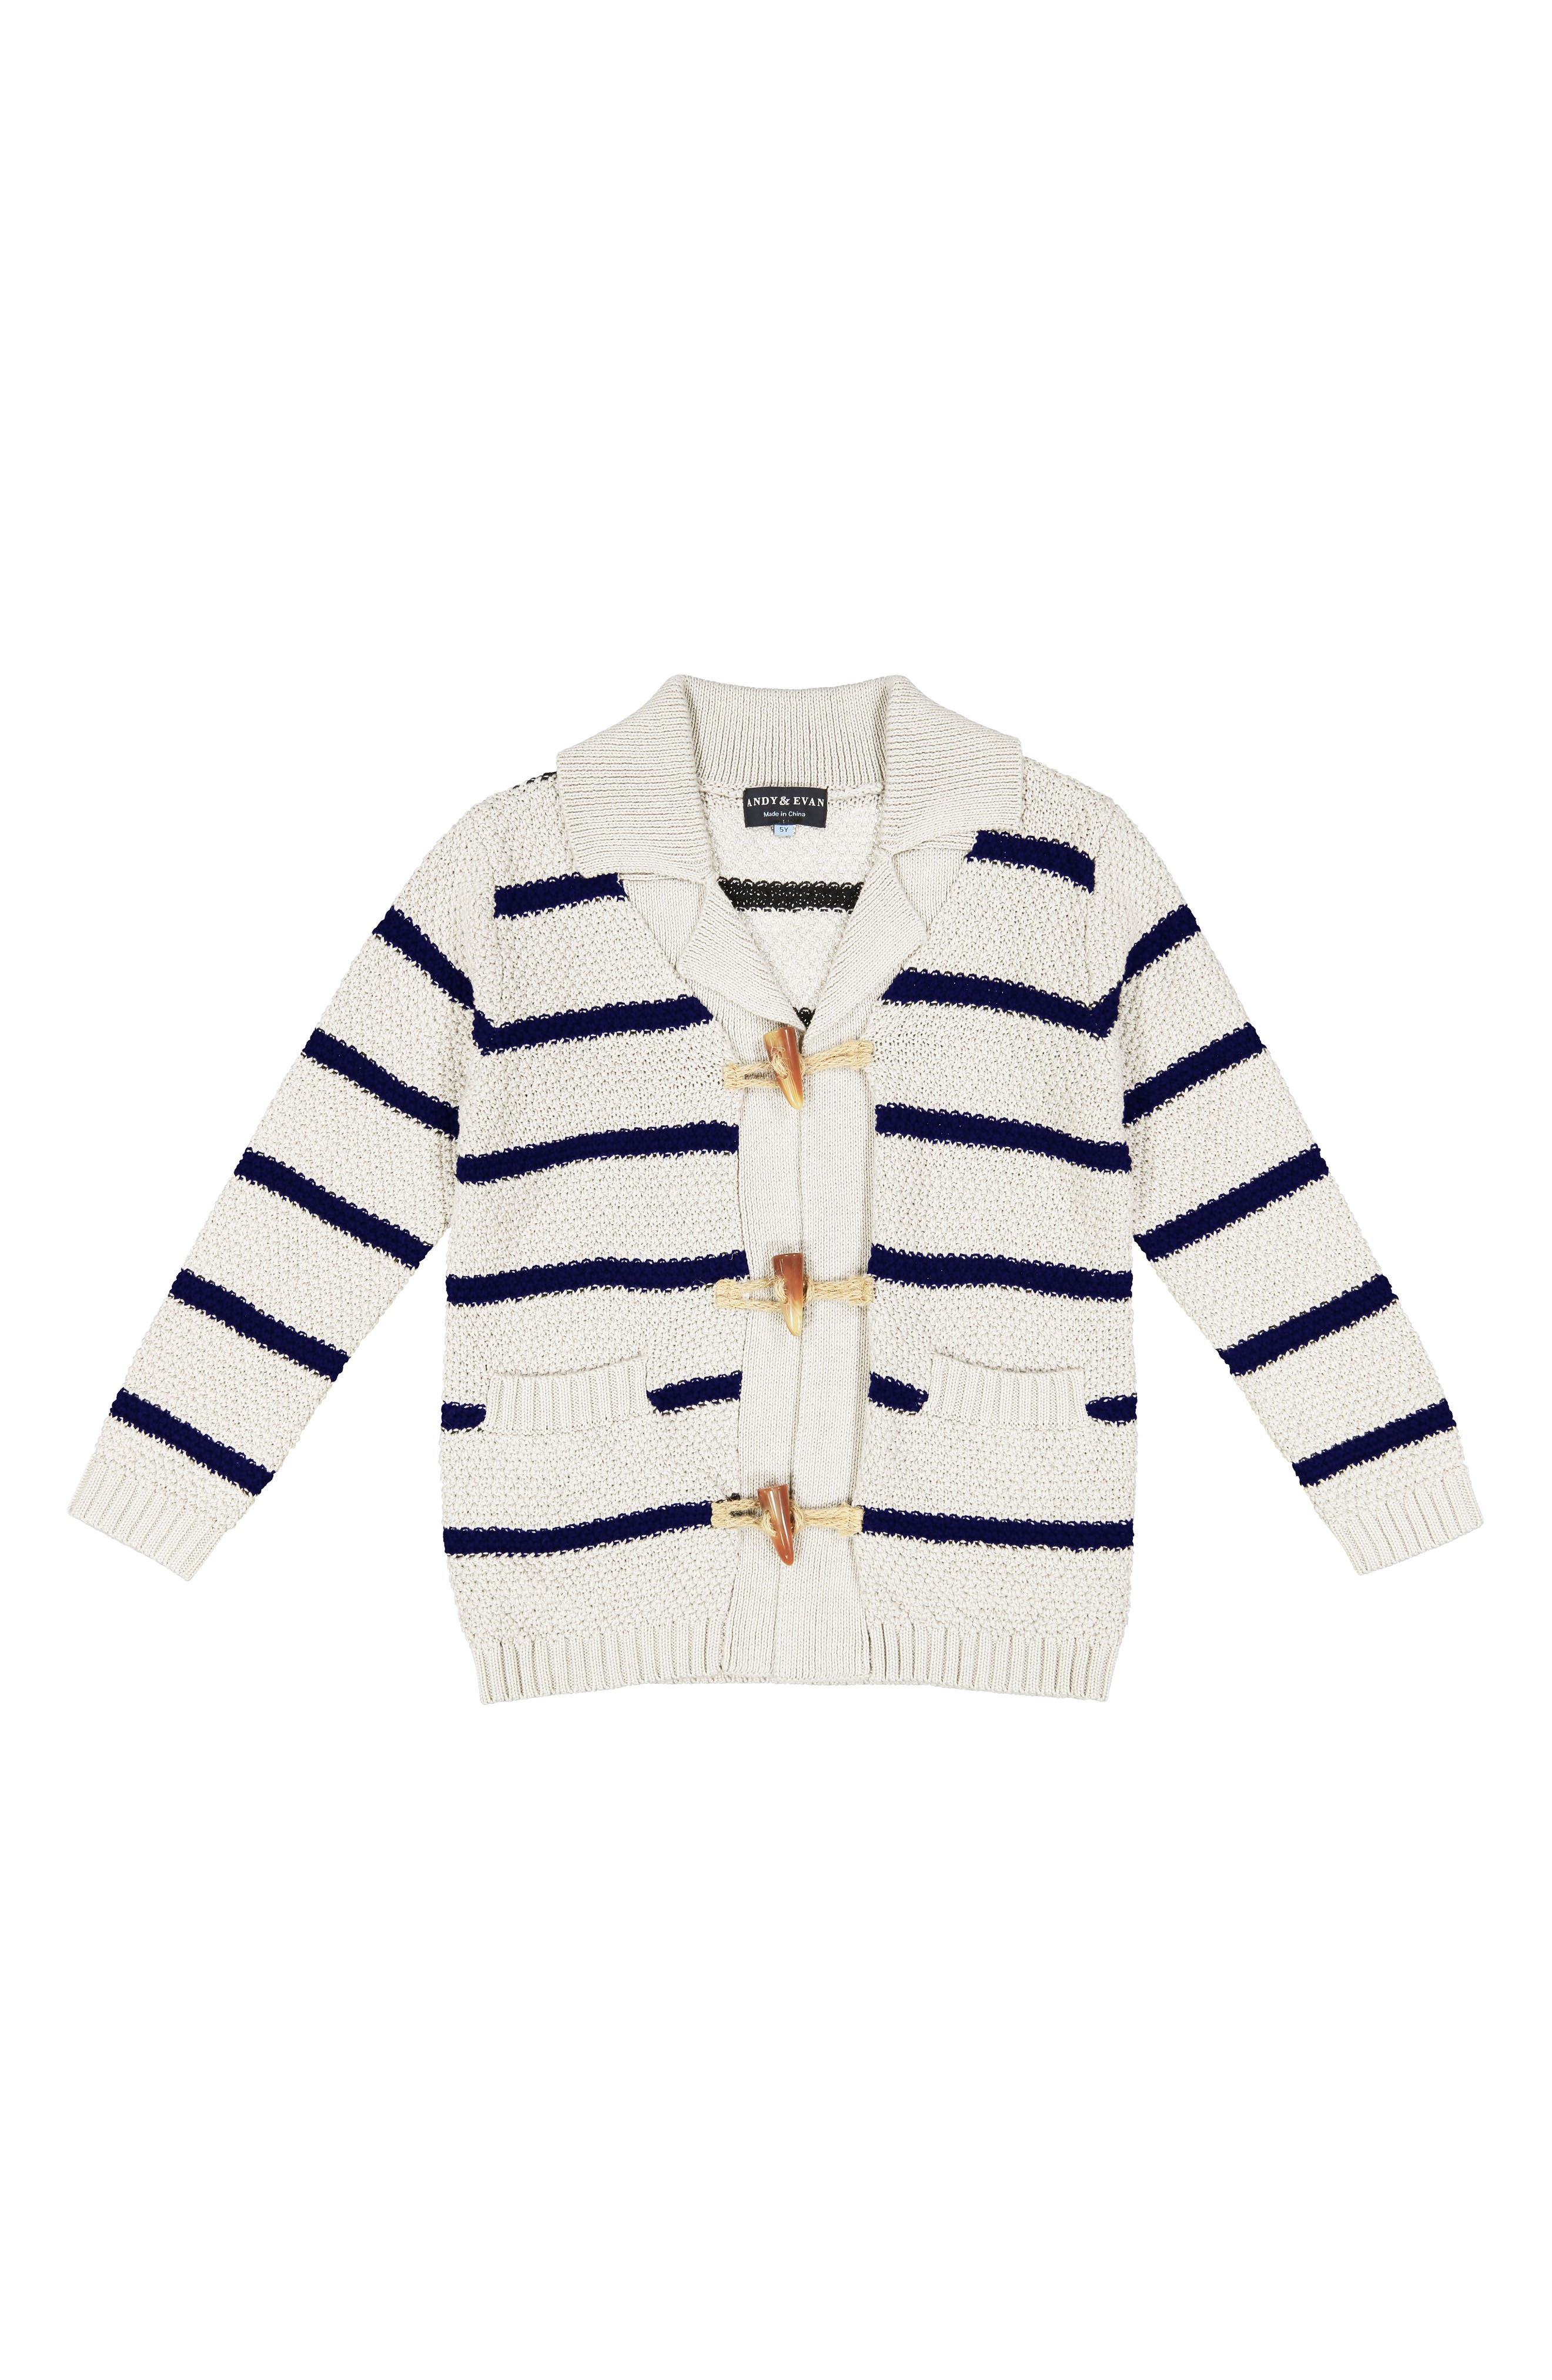 Toggle Cardigan,                         Main,                         color, White